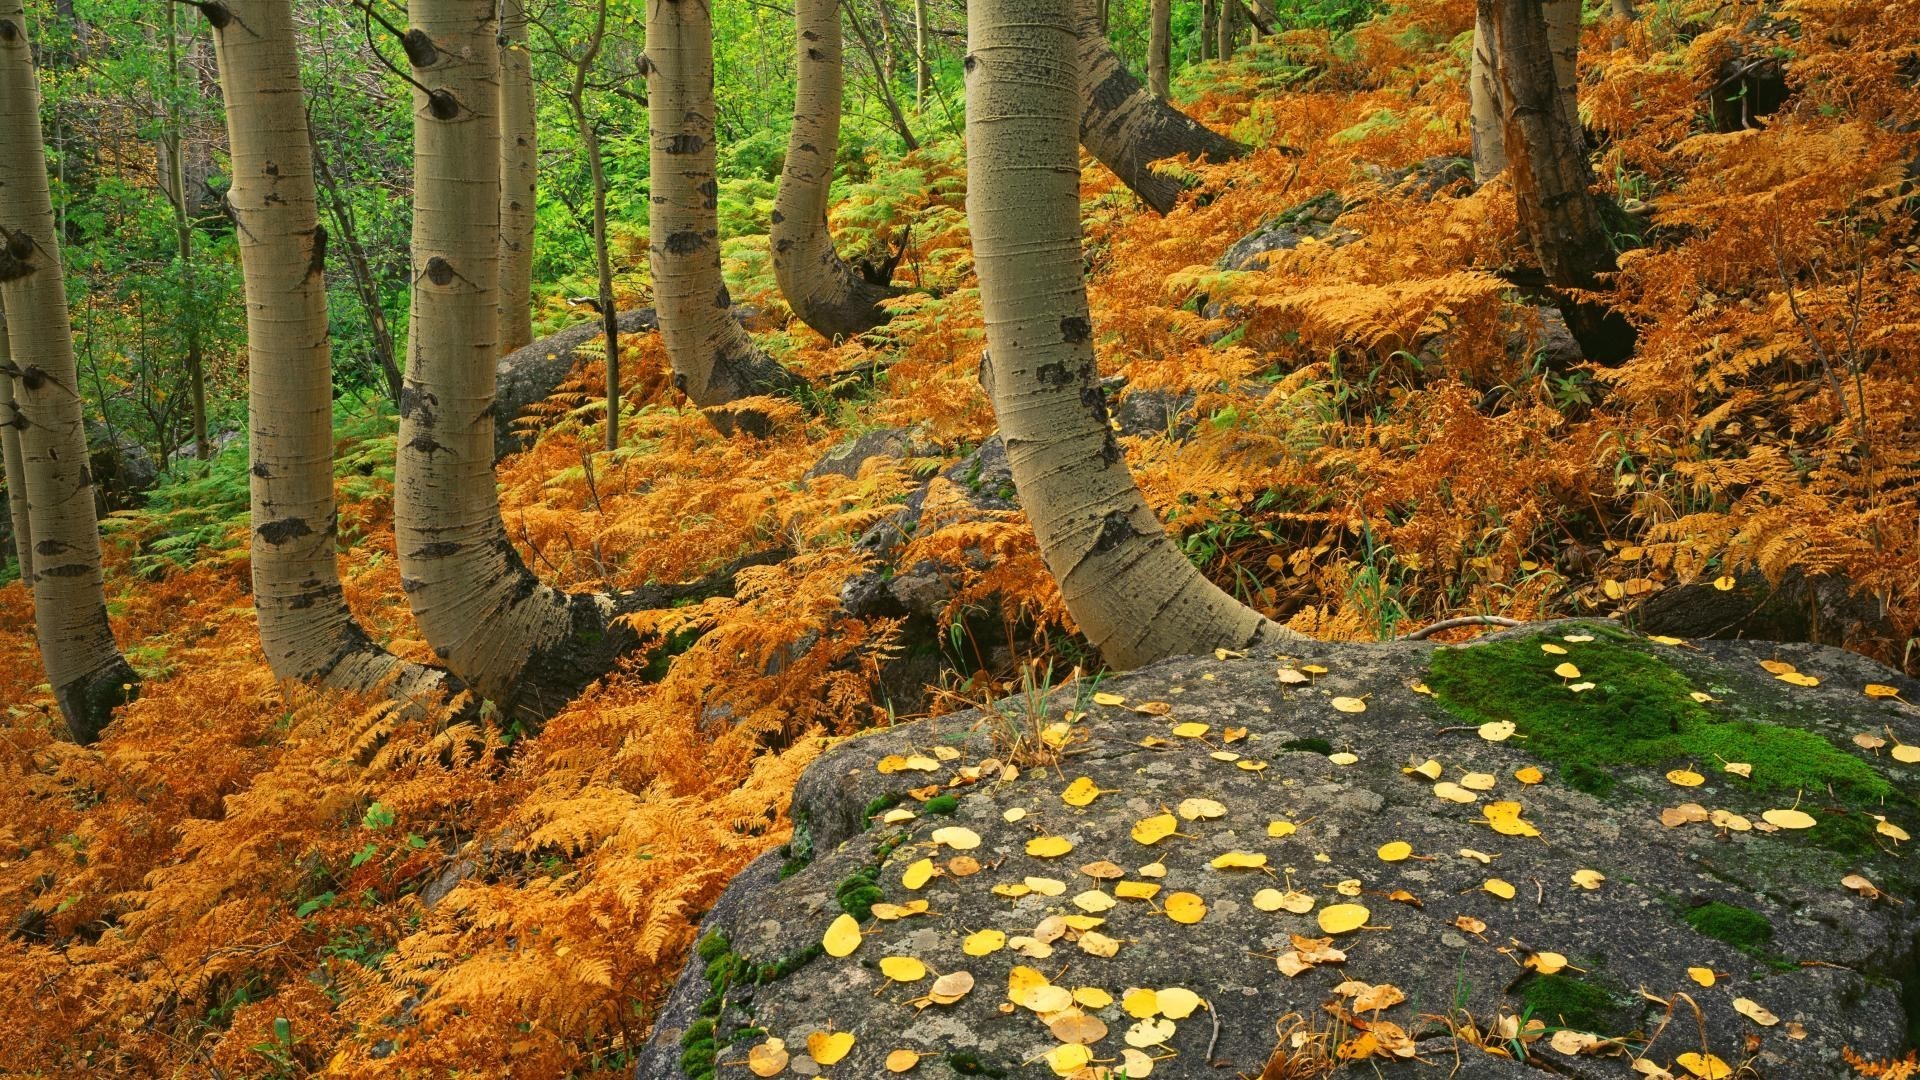 Rocky Tag – Landscapes Rocky Colorado Autumn National Park Ferns Nature Hd  Wallpaper For Android Phone